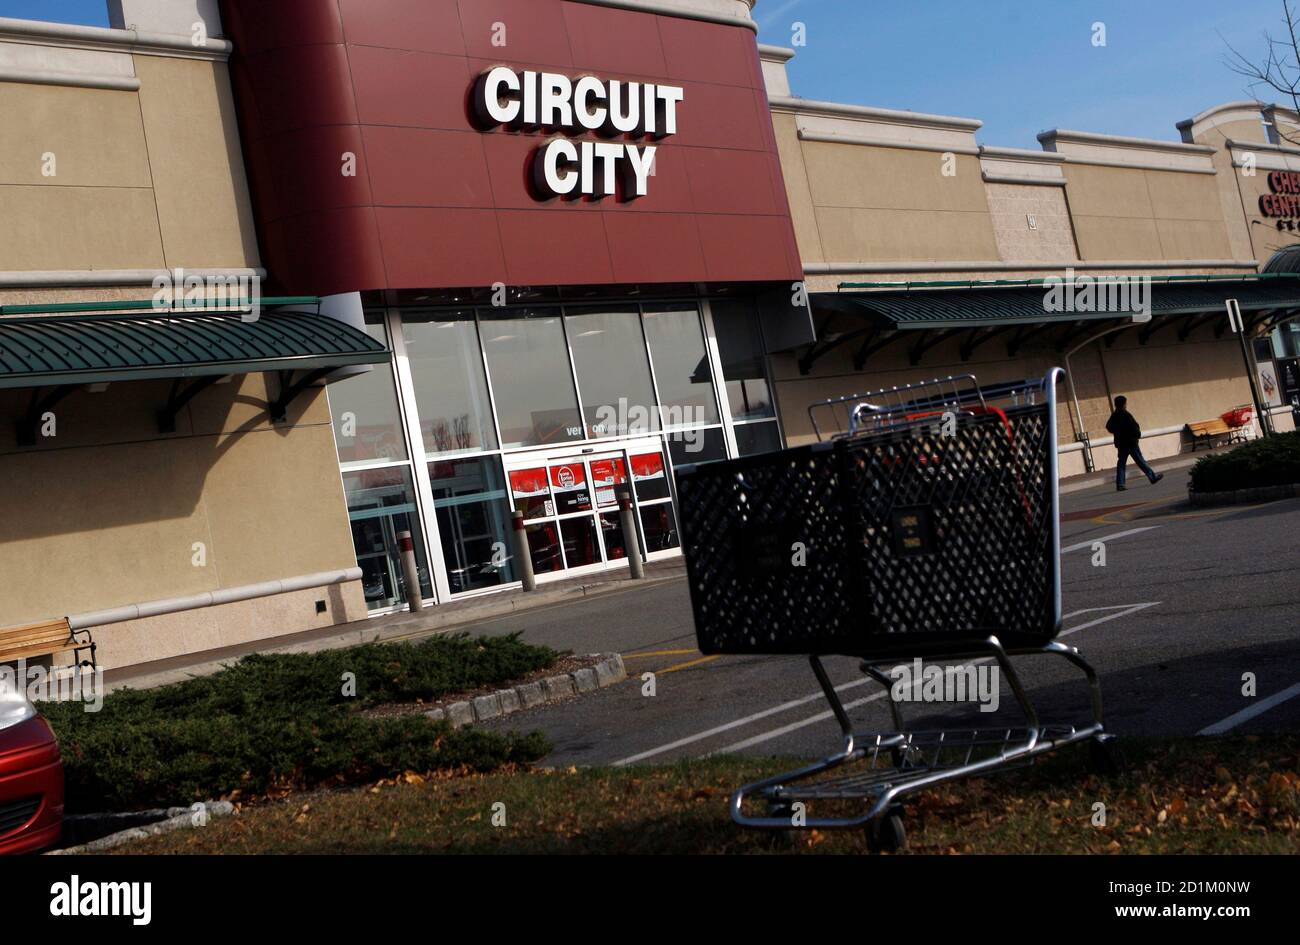 A shopping cart is left at a parking lot while a lone shopper walks in front of the Circut City store in the Paramus Towne Square mall in Paramus, New Jersey, November 18, 2008. Shopping centers, a category that includes strip malls, are doing much worse than that, reporting vacancy rates of 9.4 percent. Larger, enclosed malls are doing better, with vacancy rates of about 3.9 percent. The store closings have come as the U.S. economic downturn forces retailers to scale back expansion plans, close outposts or file for bankruptcy protection. The trend is expected to accelerate as the financial cr Stock Photo